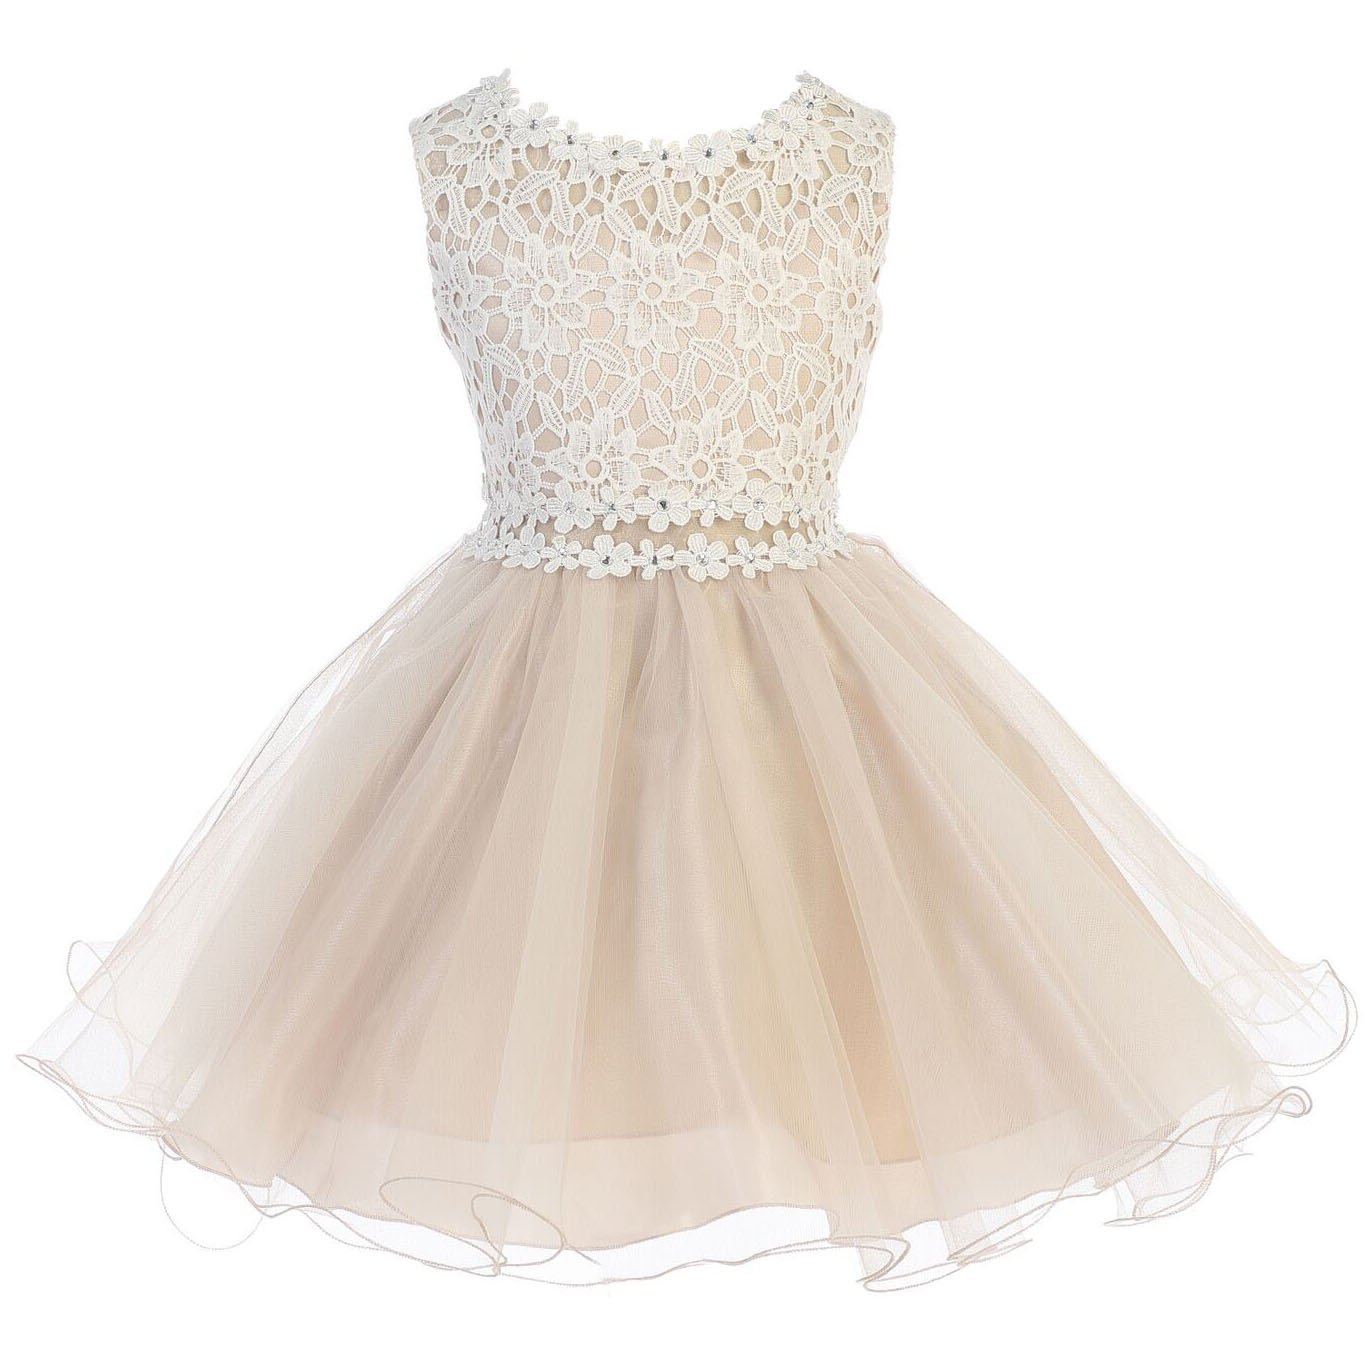 4c660d68675 Little Girls Taupe Lace Tulle Layers Junior Bridesmaid Flower Girl Dress  Size 2